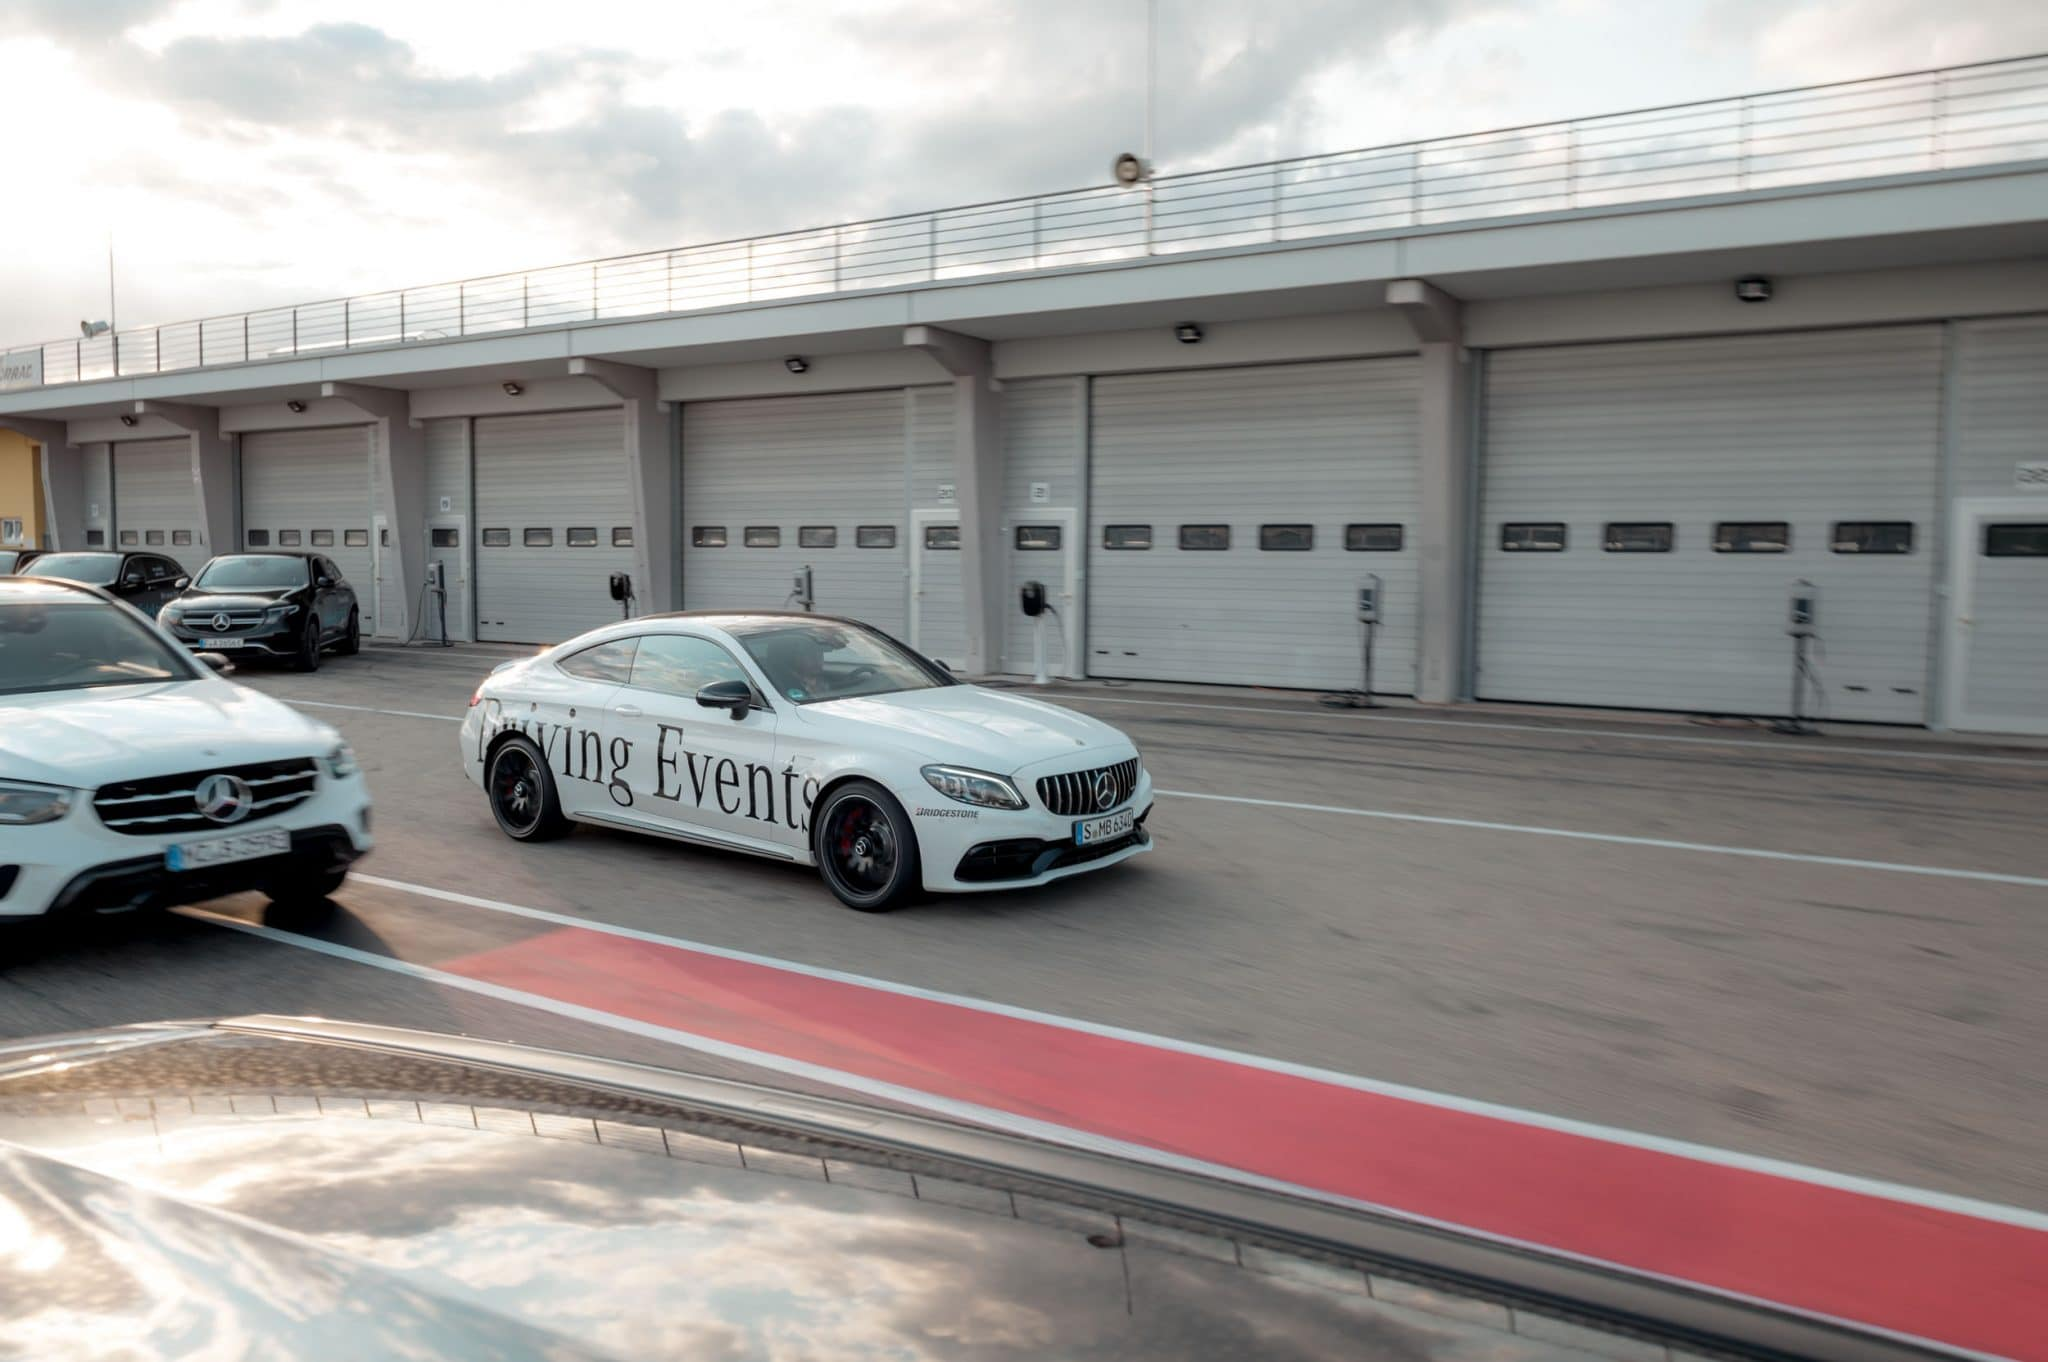 Mercedes Benz Driving Events Sachsenring 11. September 2020 766 scaled |